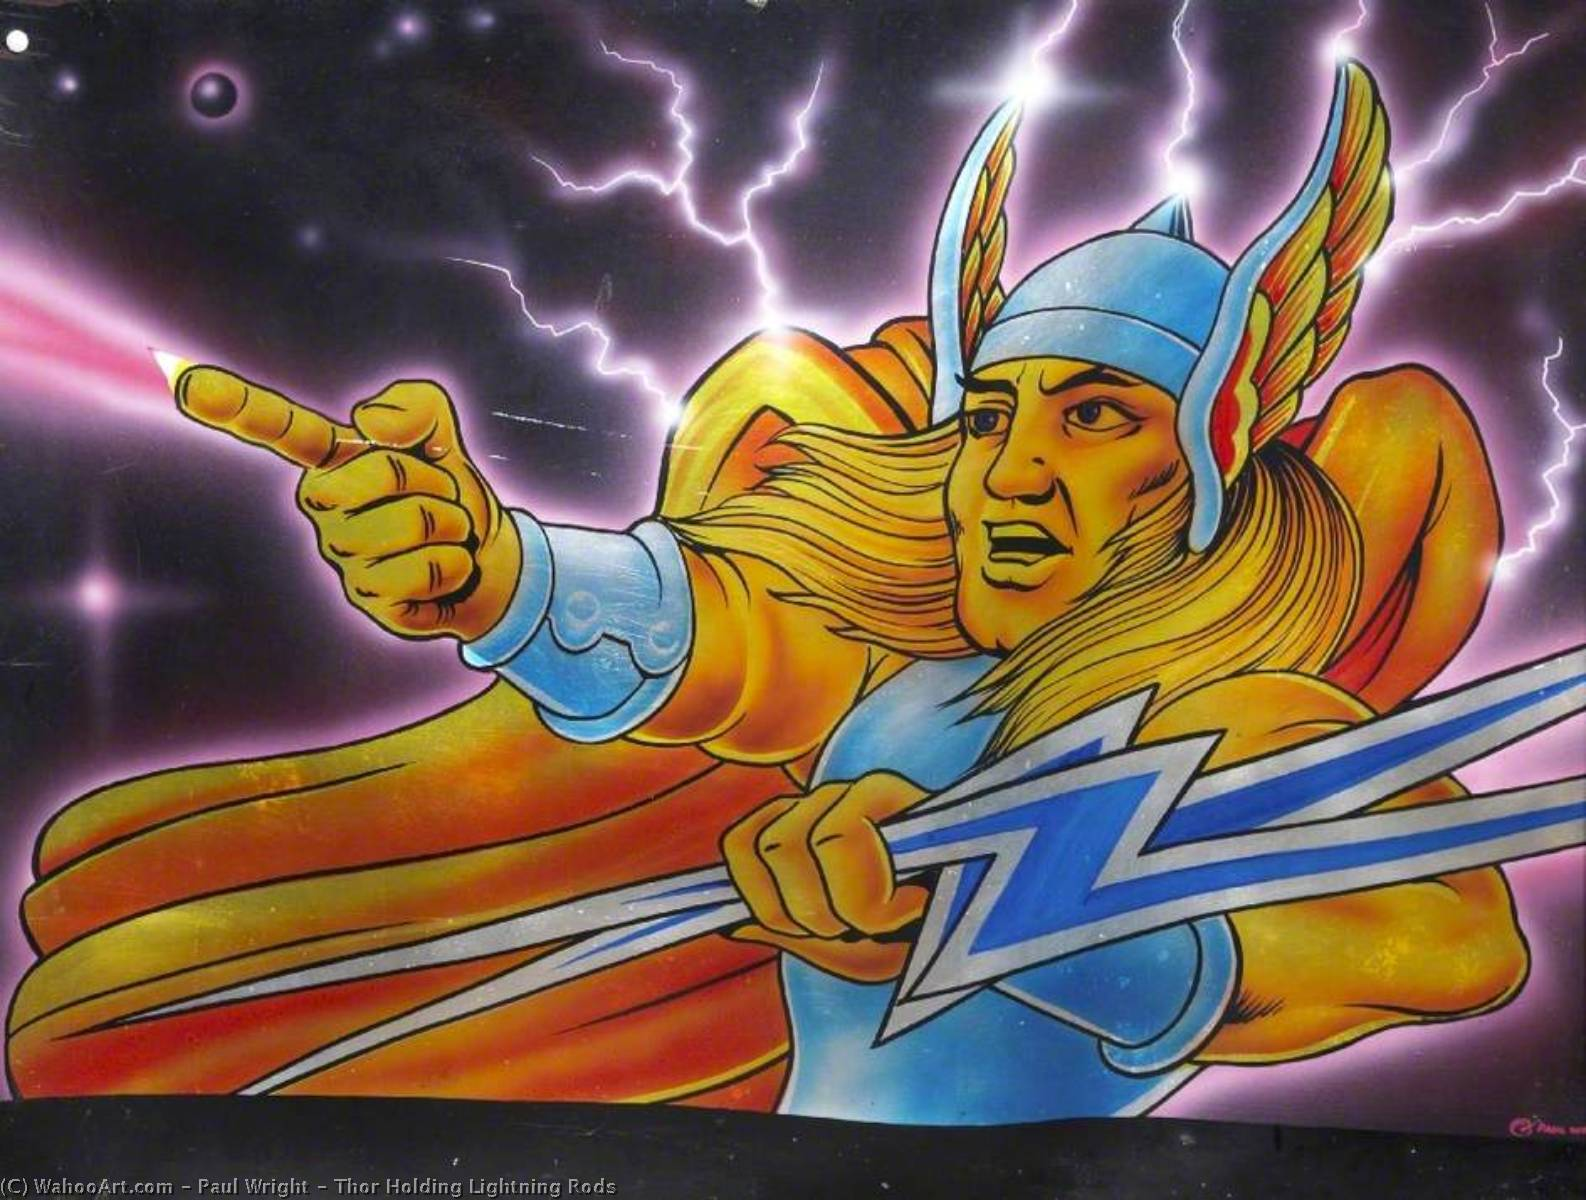 Thor La tenue lightning rods, Huile de Paul Wright